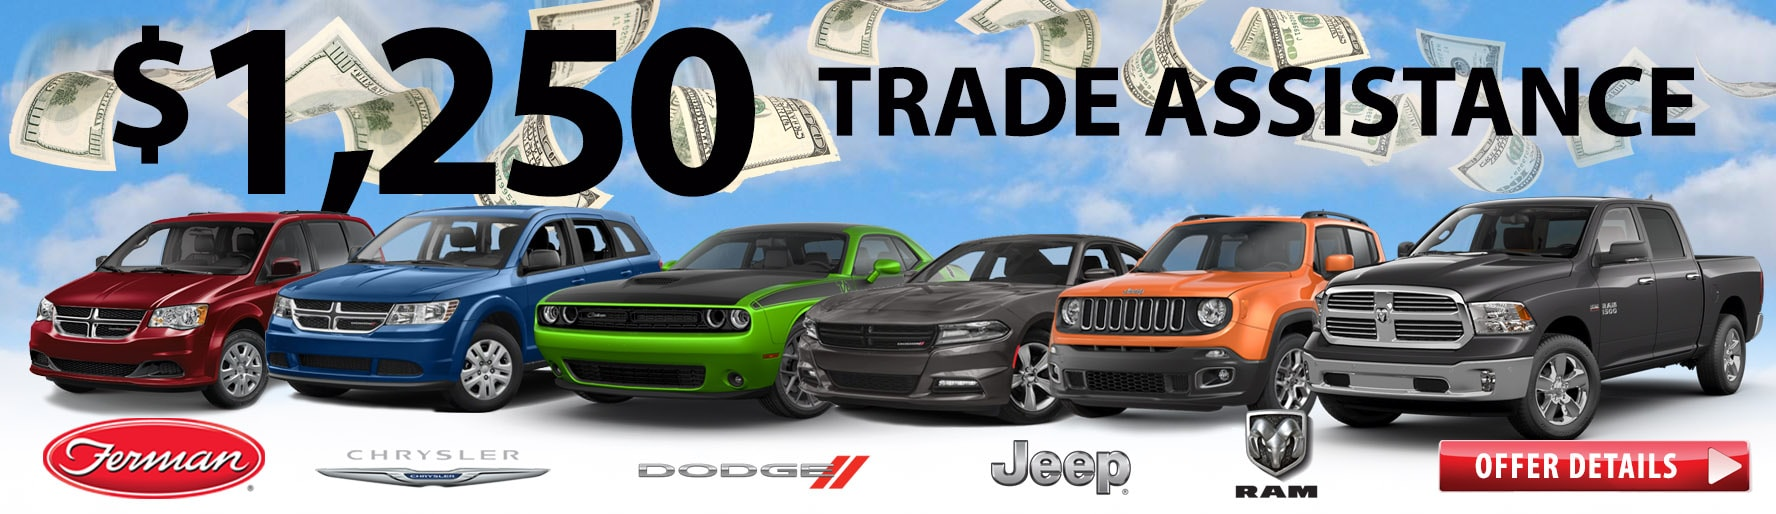 Ferman Chrysler Jeep Dodge Ram Of New Port Richey New